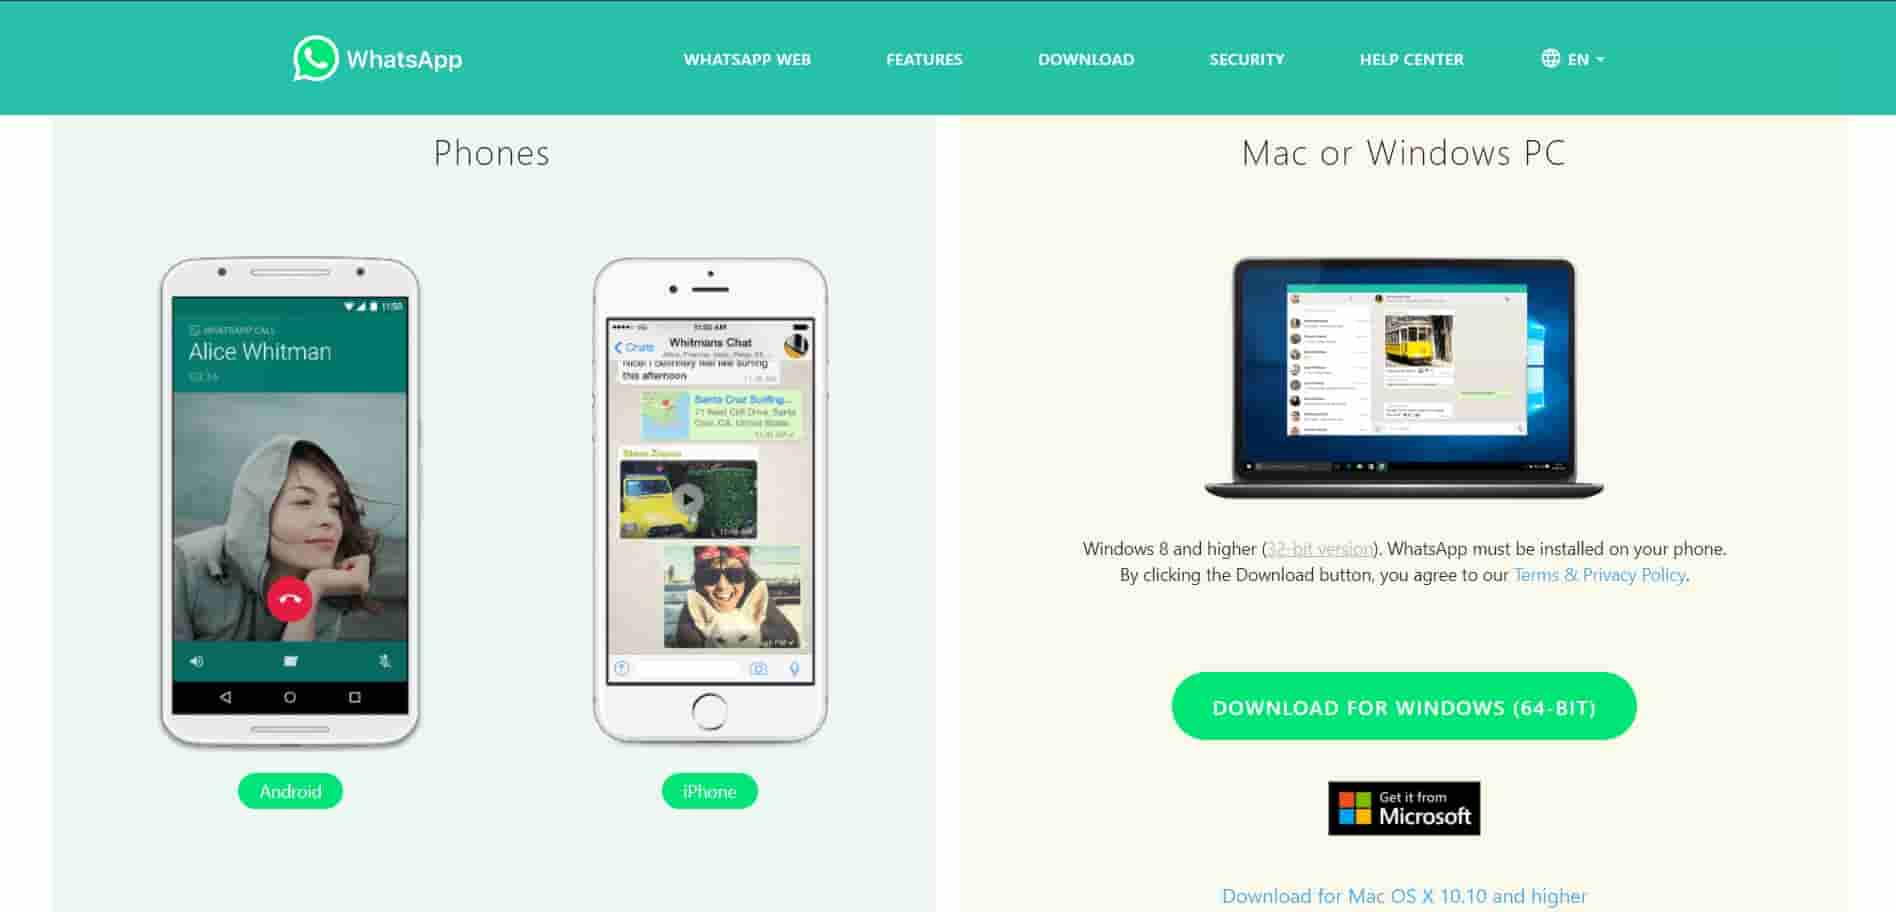 how to make whatsapp call from pc, how to make whatsapp call from mac, how to make whatsapp call from windows and mac, whatsapp call from pc, whatsapp call from mac